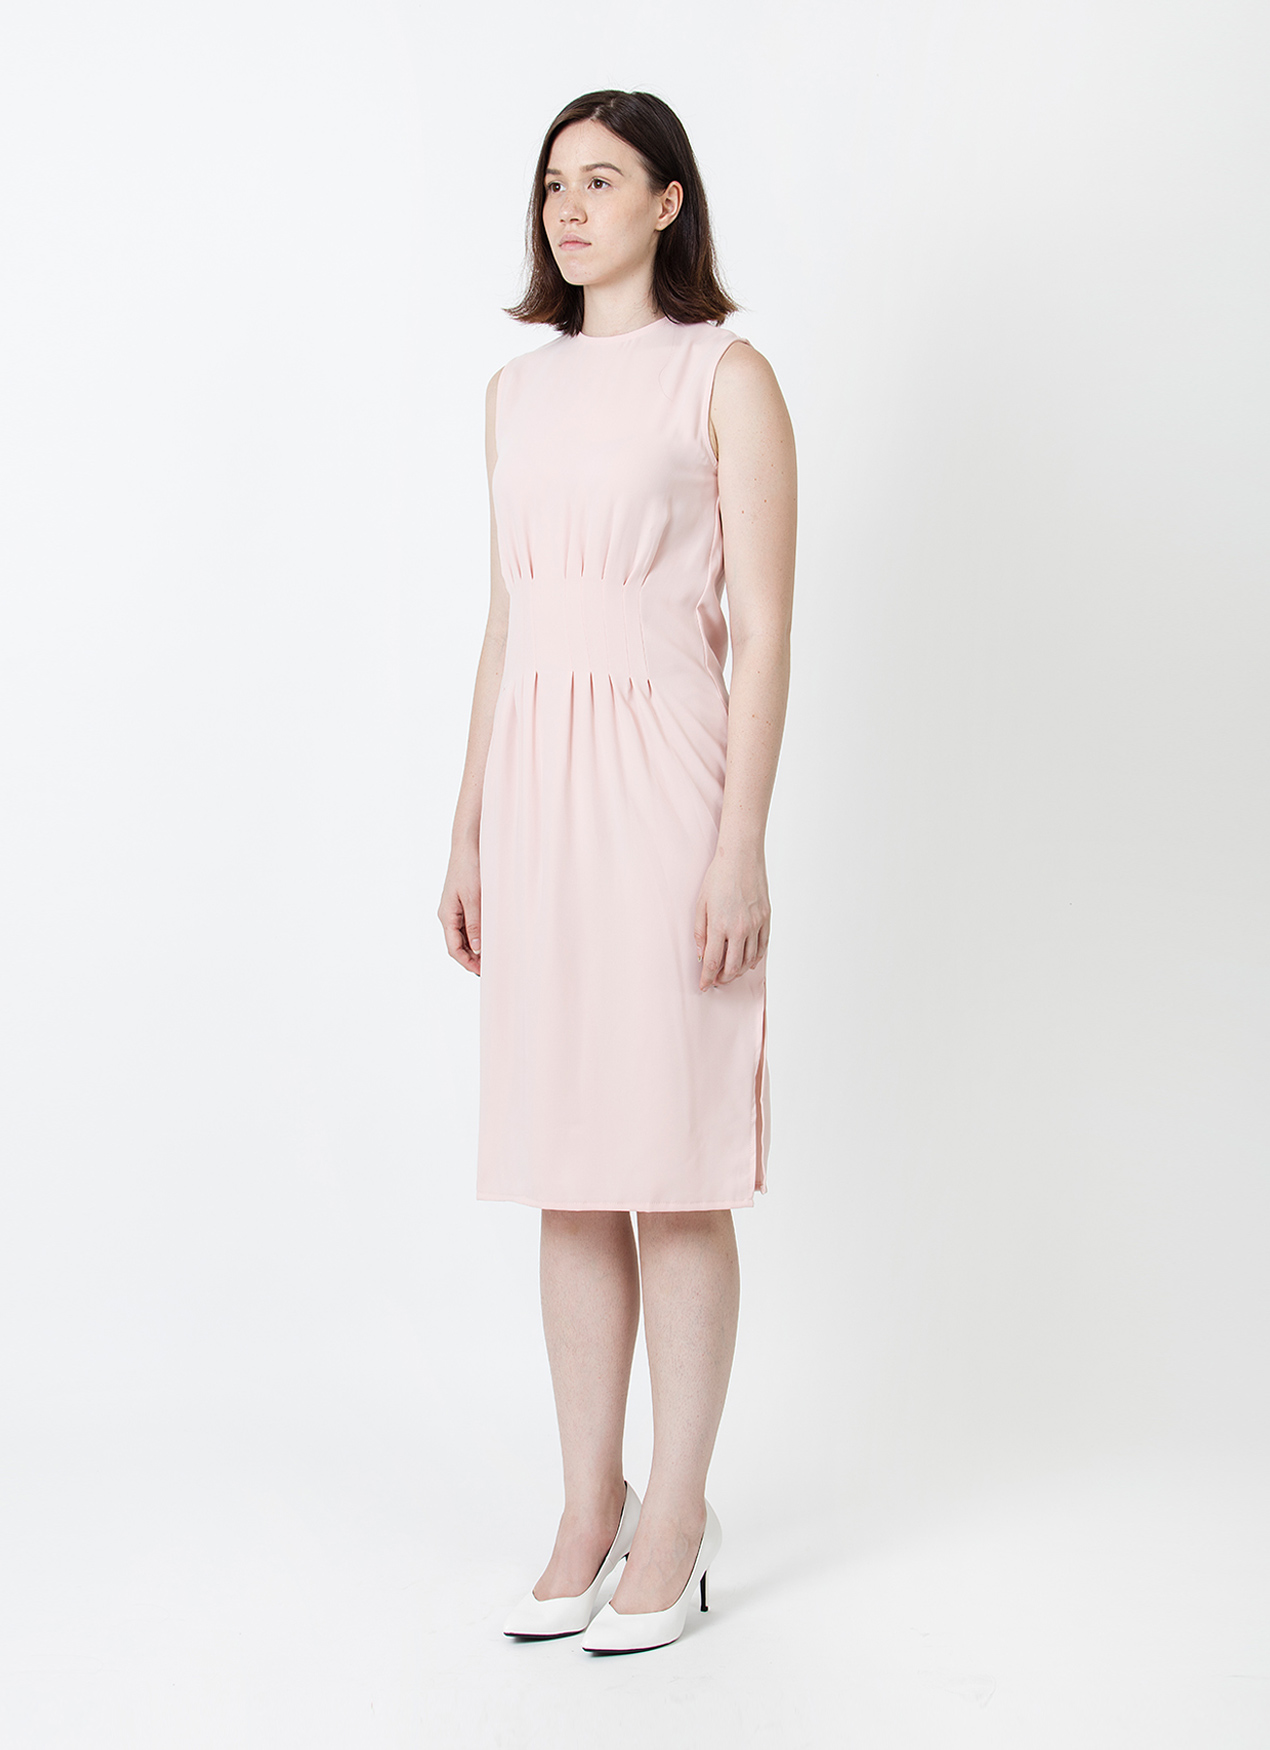 Wastu Cupolla Hourglass Dress - Pink